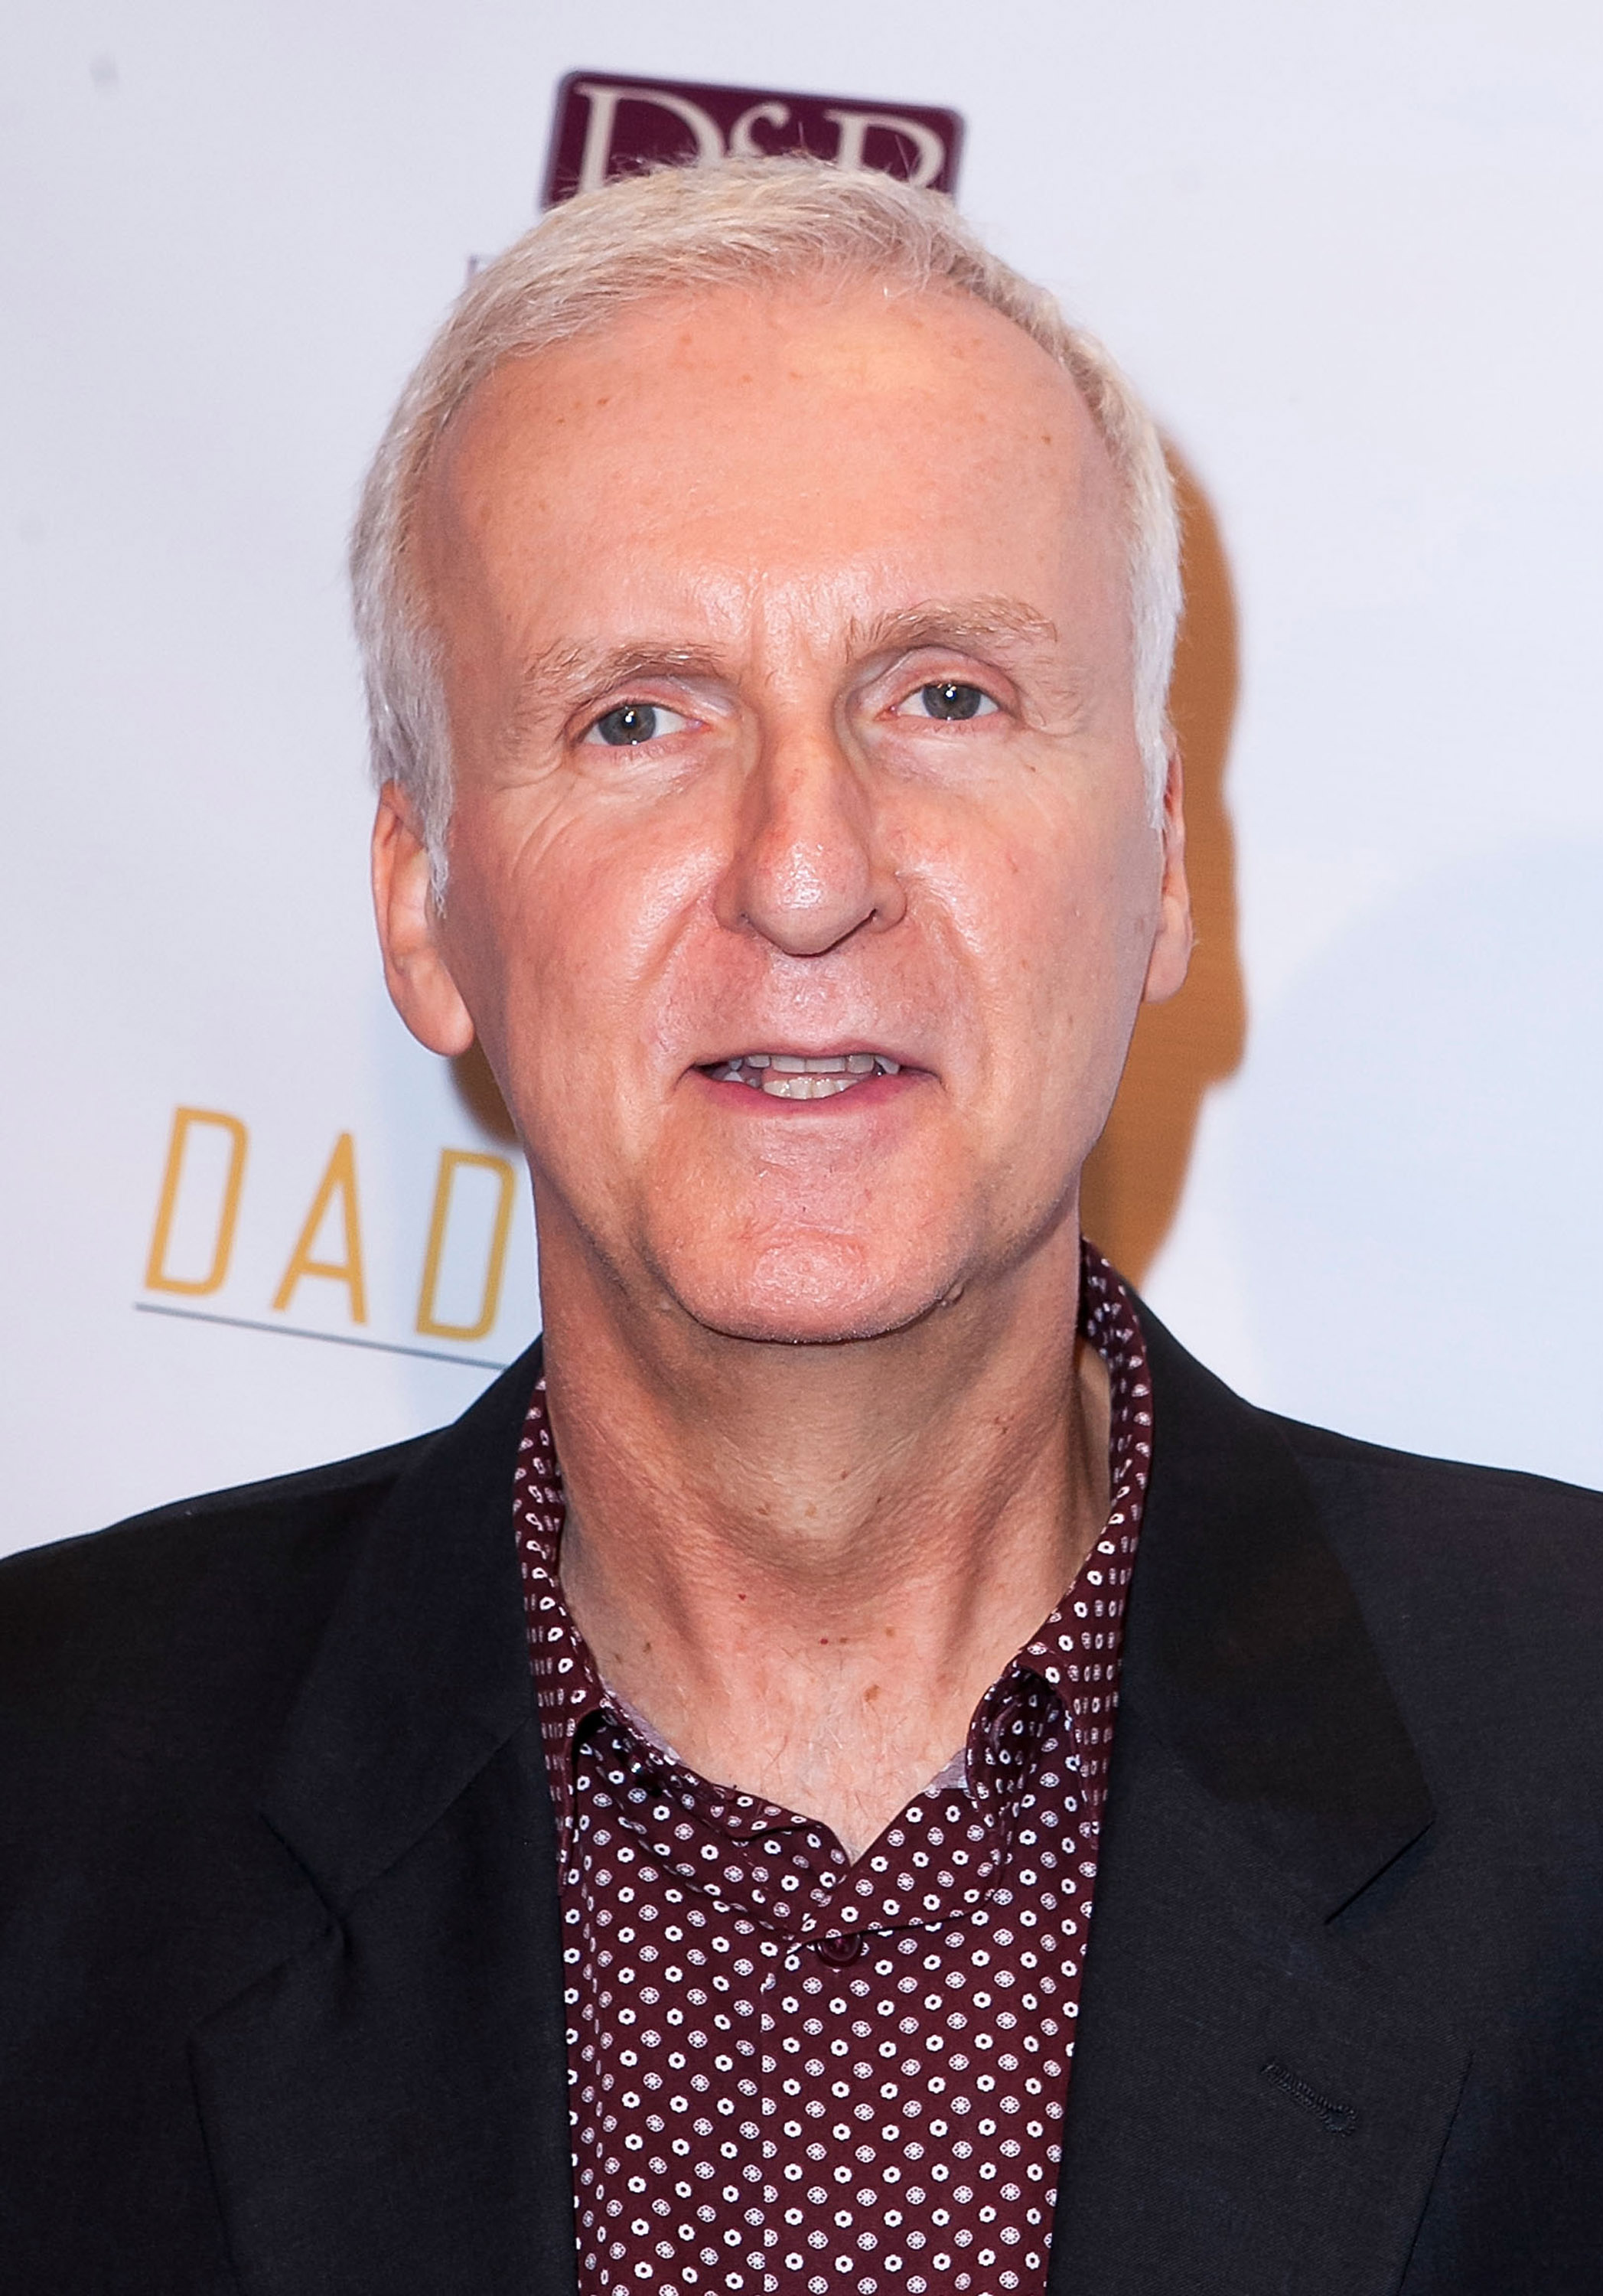 James Cameron arrives for the Premiere Of  All You Need Is Love  - Arrivals at Ray Kurtzman Theater on October 29, 2014 in Los Angeles, California.